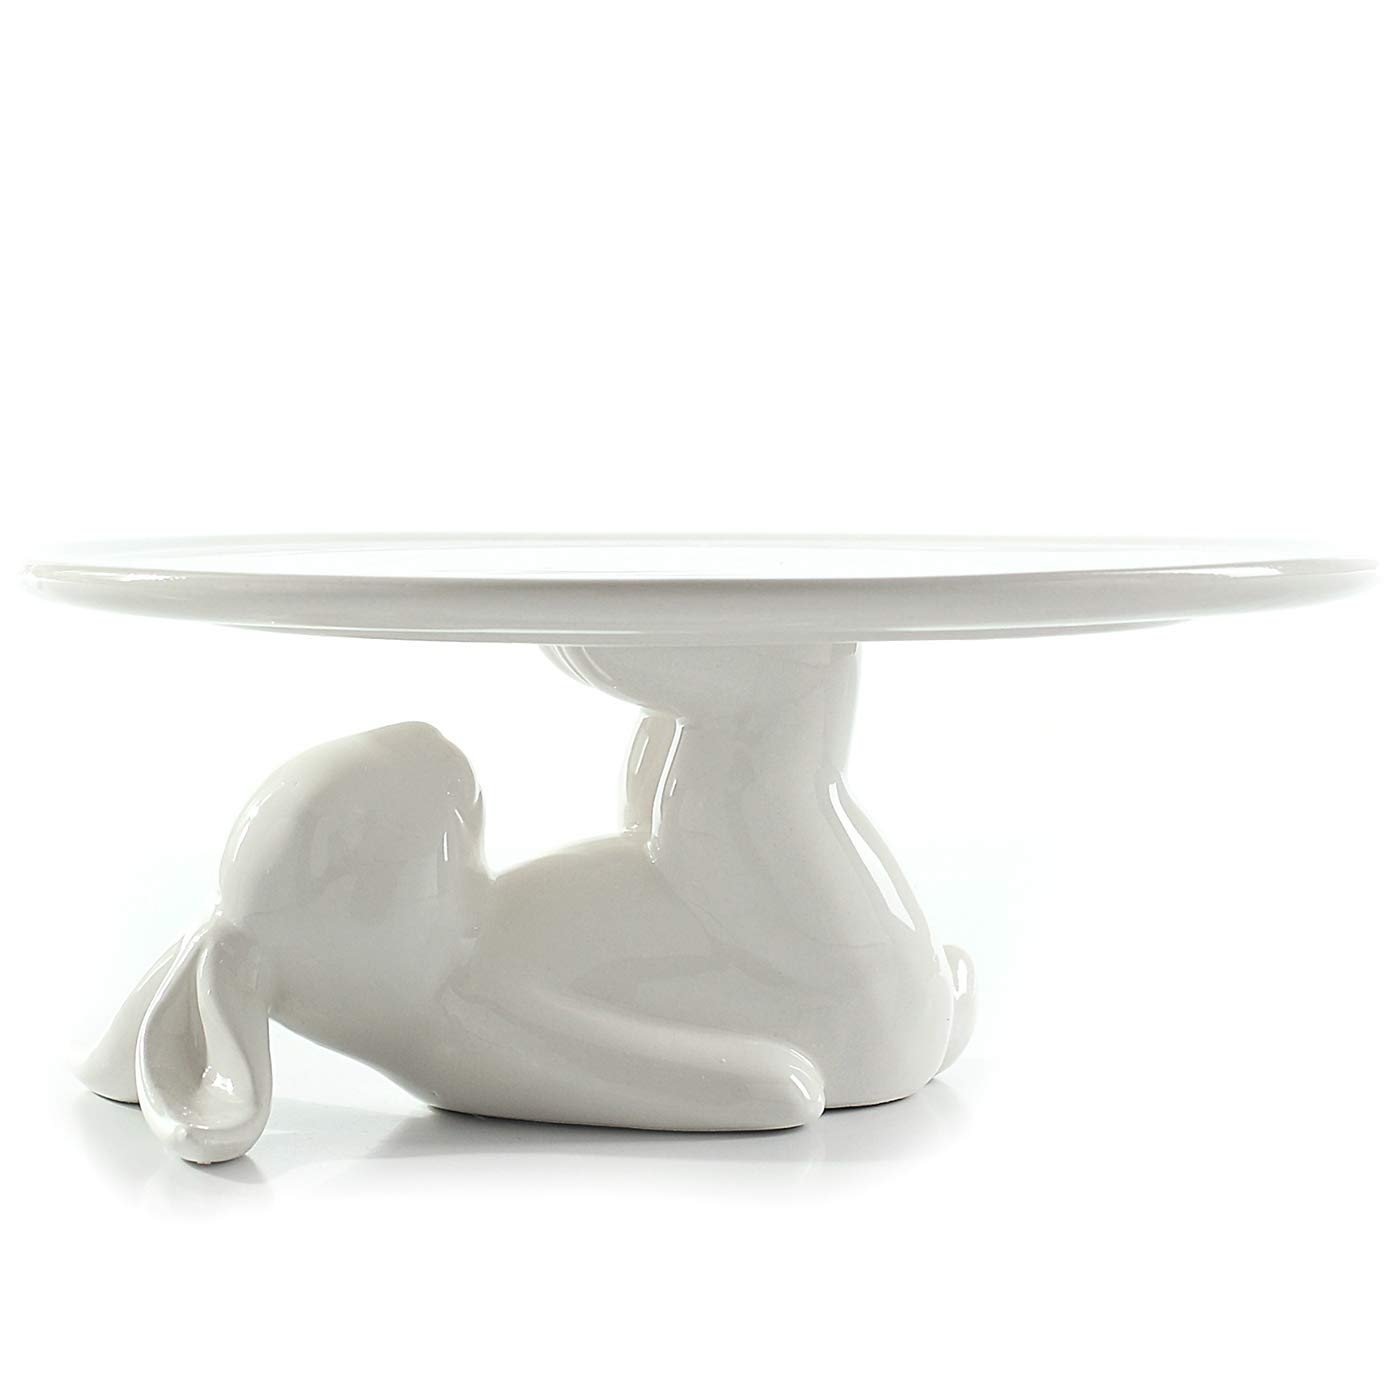 Jusalpha New Style White Ceramic Cake stand With Cute Rabbit Stand 12 Inches